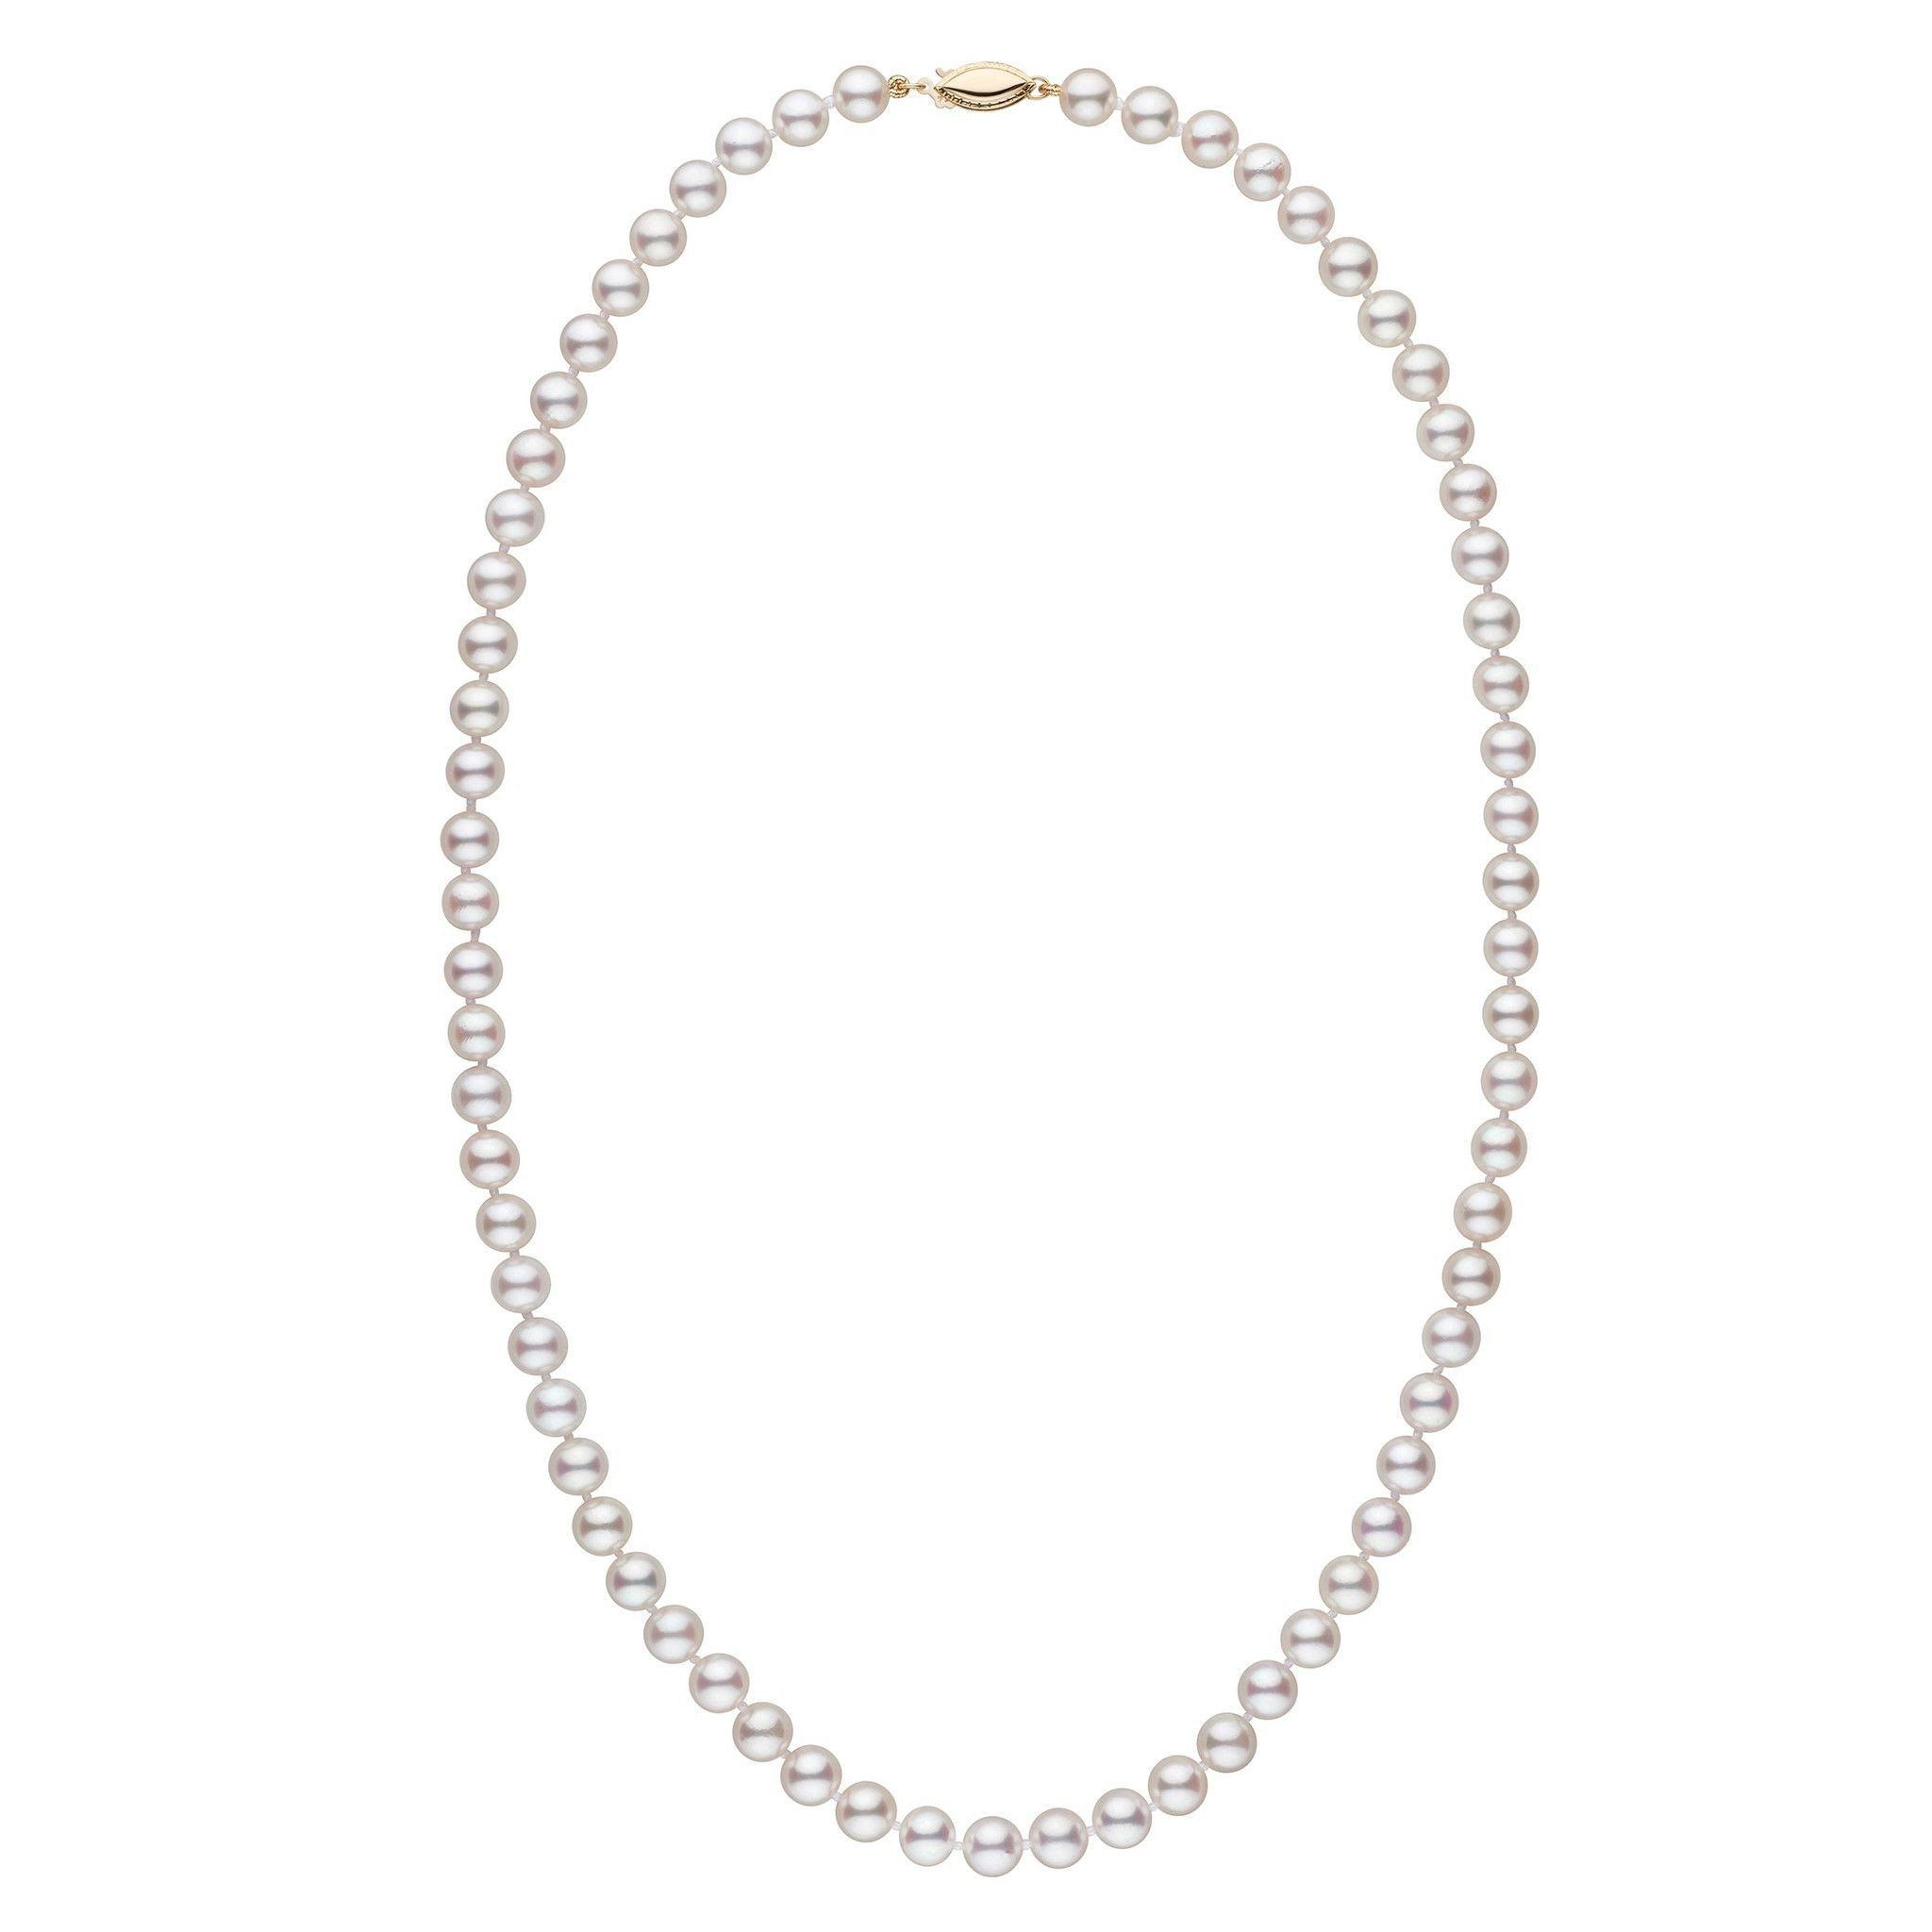 6.5-7.0 mm 22 Inch AAA White Akoya Pearl Necklace